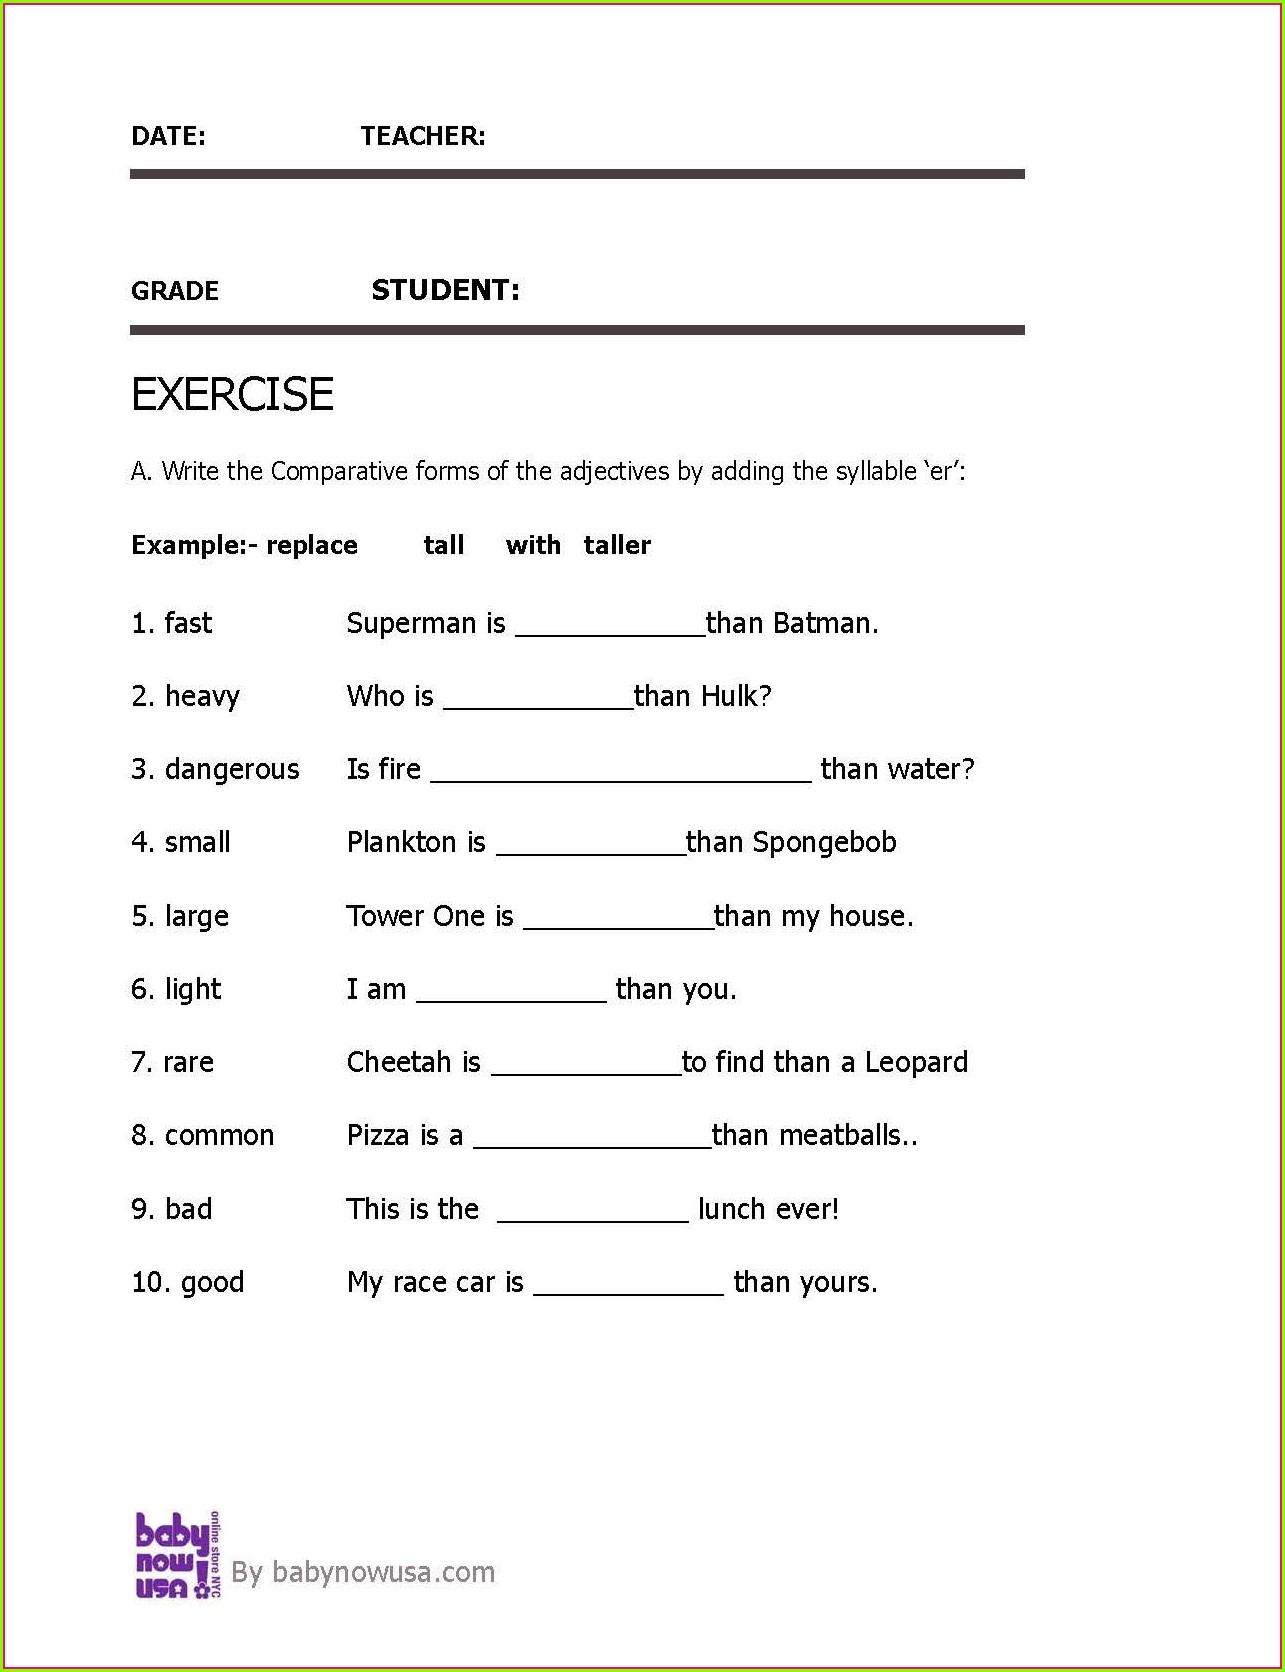 Fifth Grade Adjectives Worksheets For Grade 5 With Answers